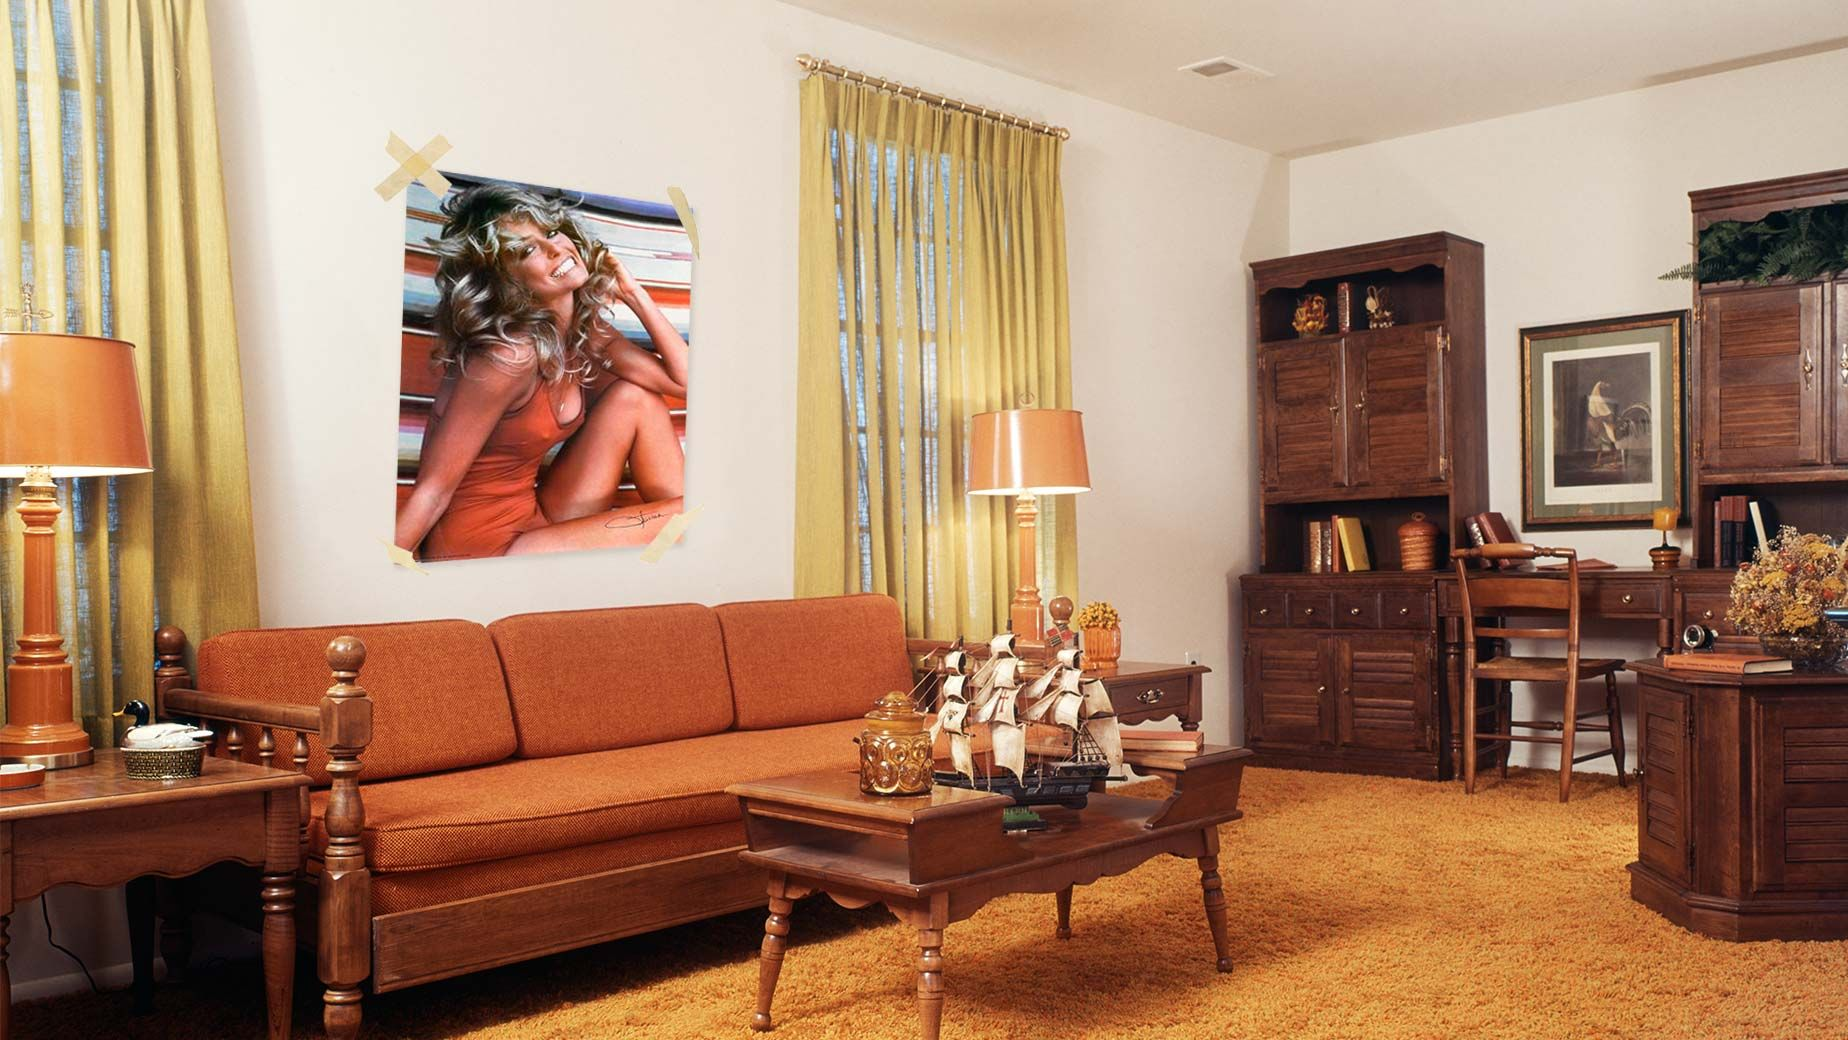 worst home decor ideas of the 1970s - Home Decor Calgary